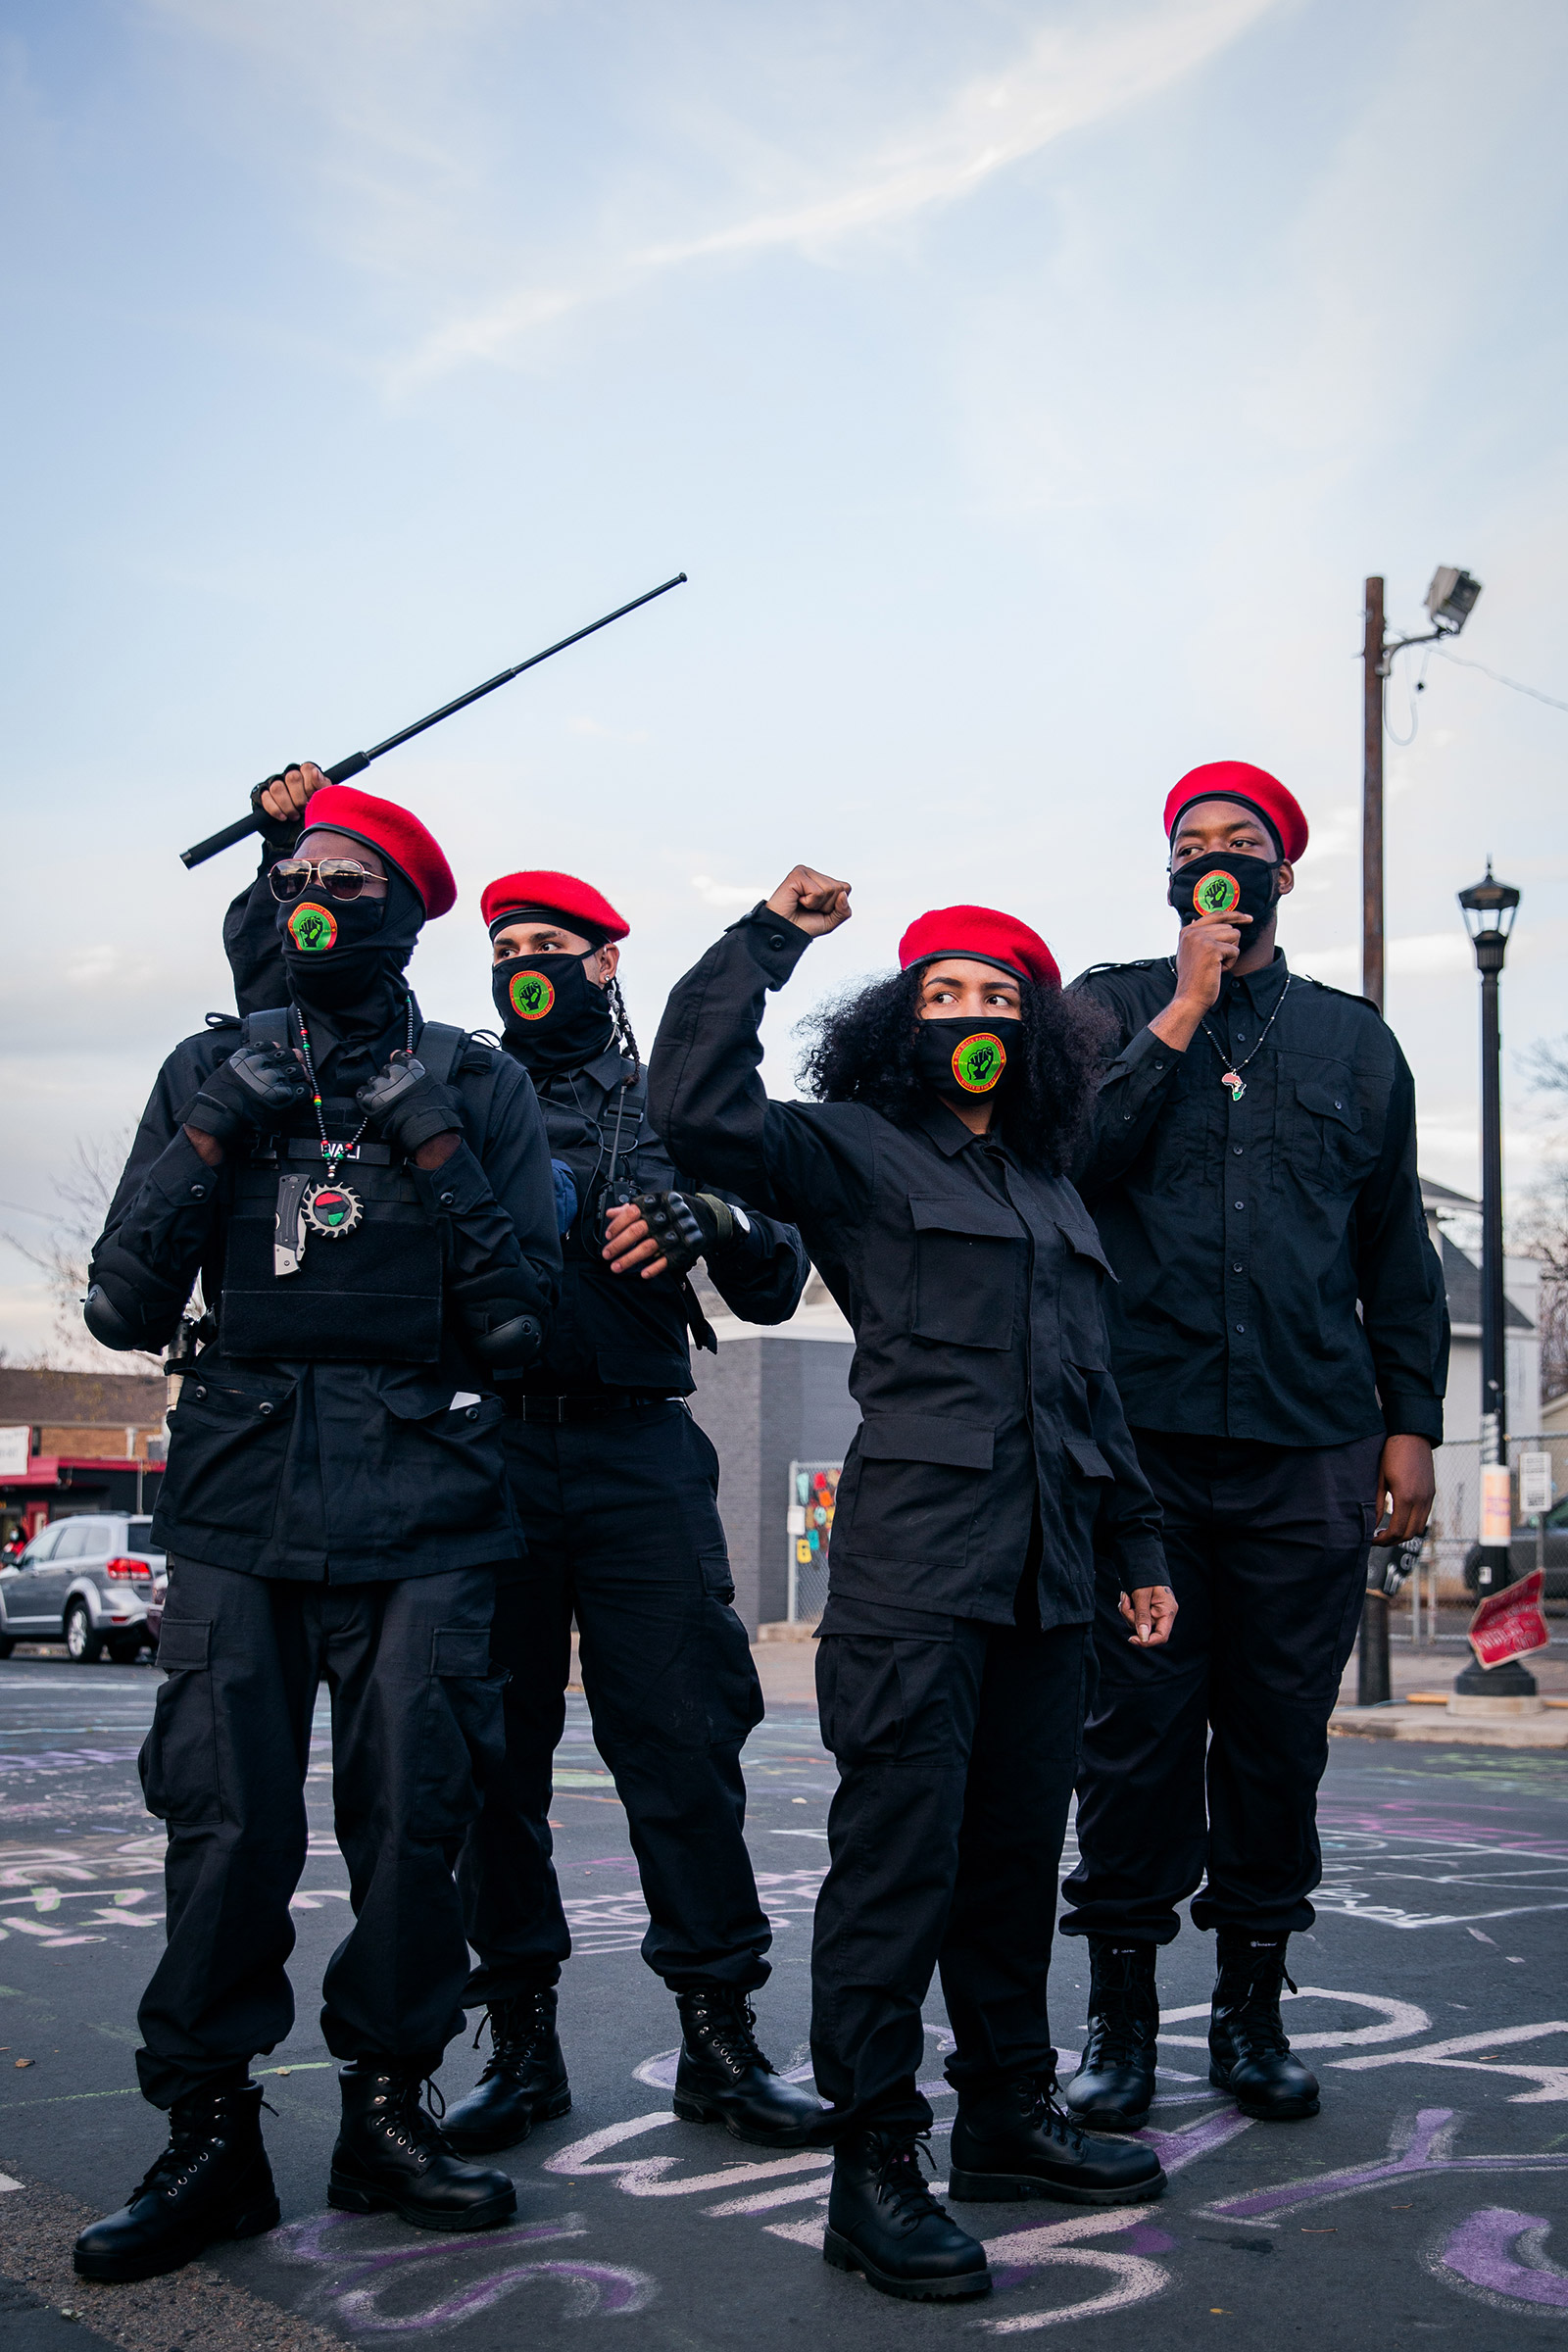 Members of The New Black Panther Party make an appearance at George Floyd Square in South Minneapolis on Nov. 7.